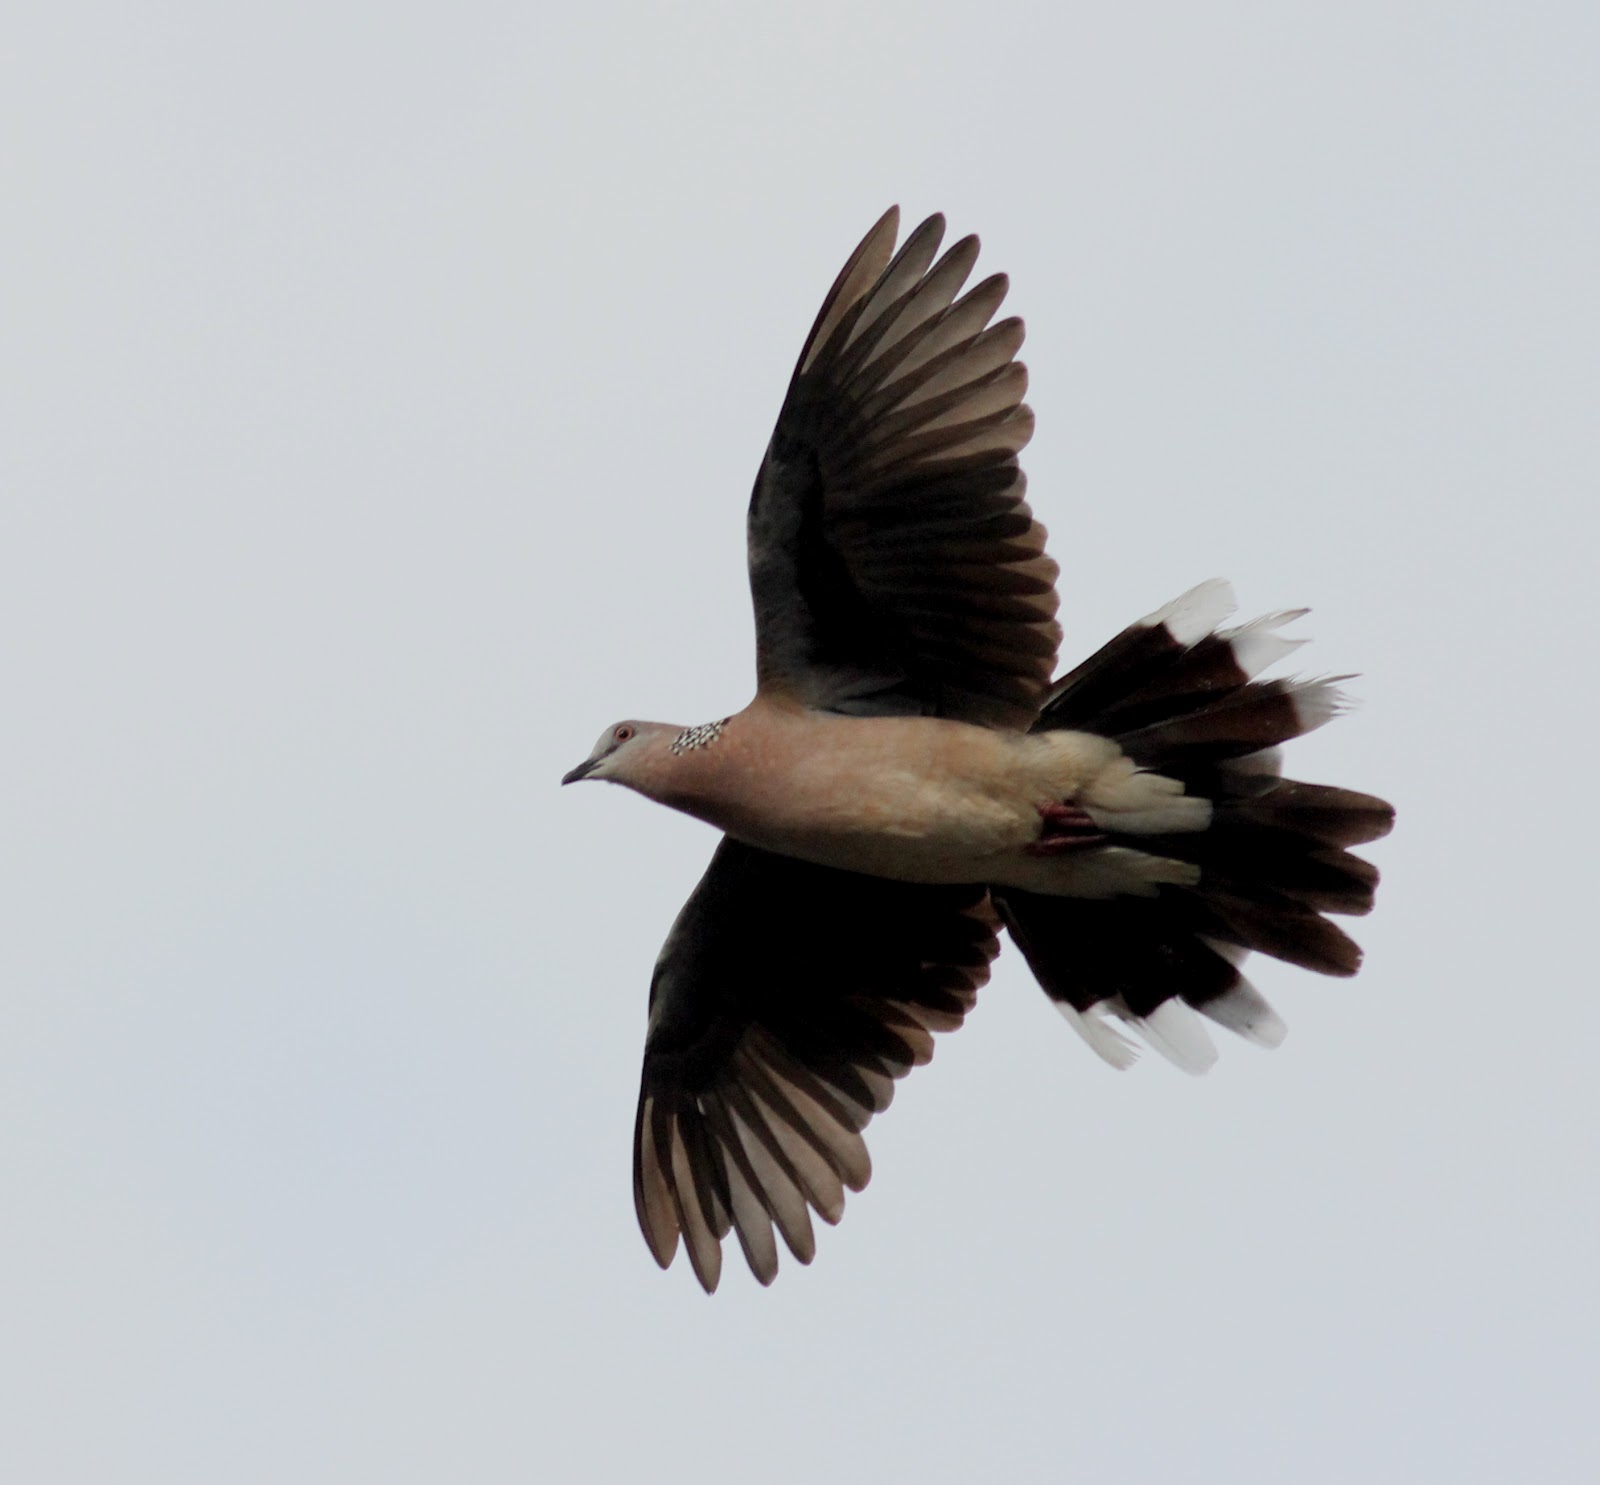 Spotted dove flying - photo#6